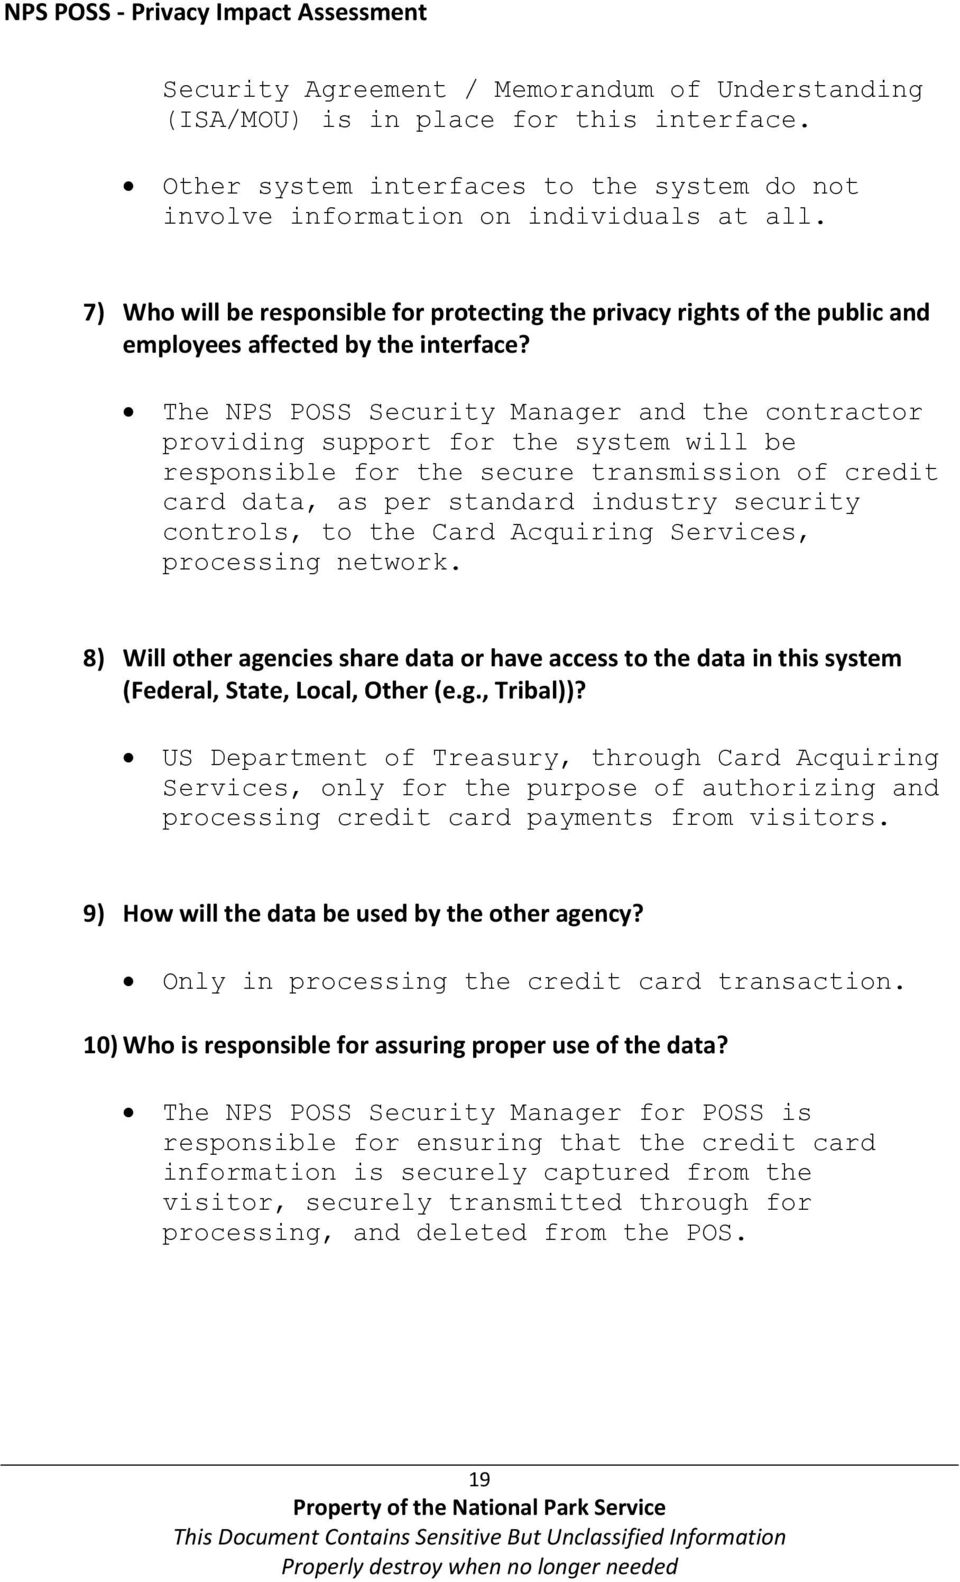 The NPS POSS Security Manager and the contractor providing support for the system will be responsible for the secure transmission of credit card data, as per standard industry security controls, to